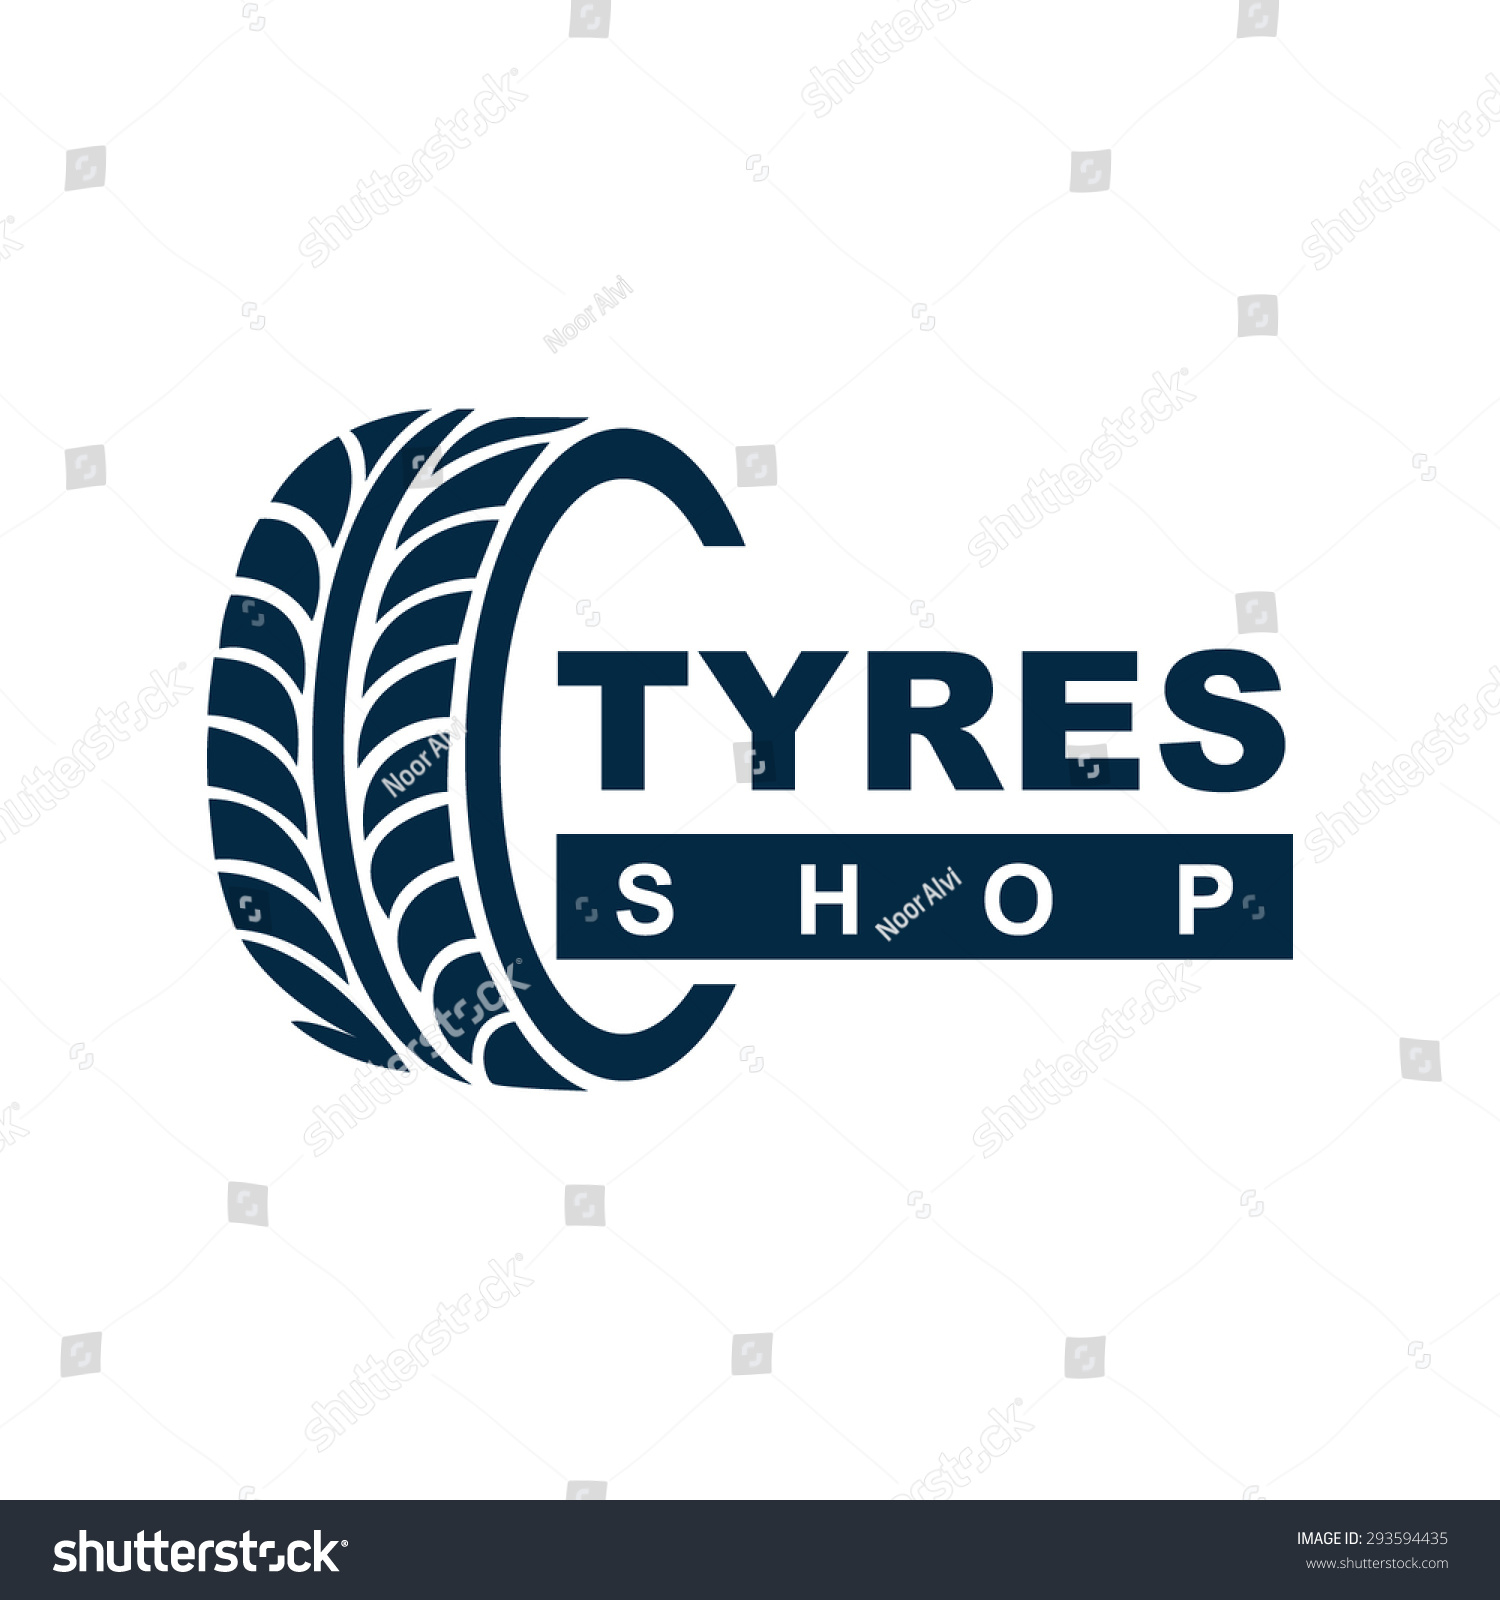 Tyre Shop Logo Design Tyre Business Stock Vector Royalty Free